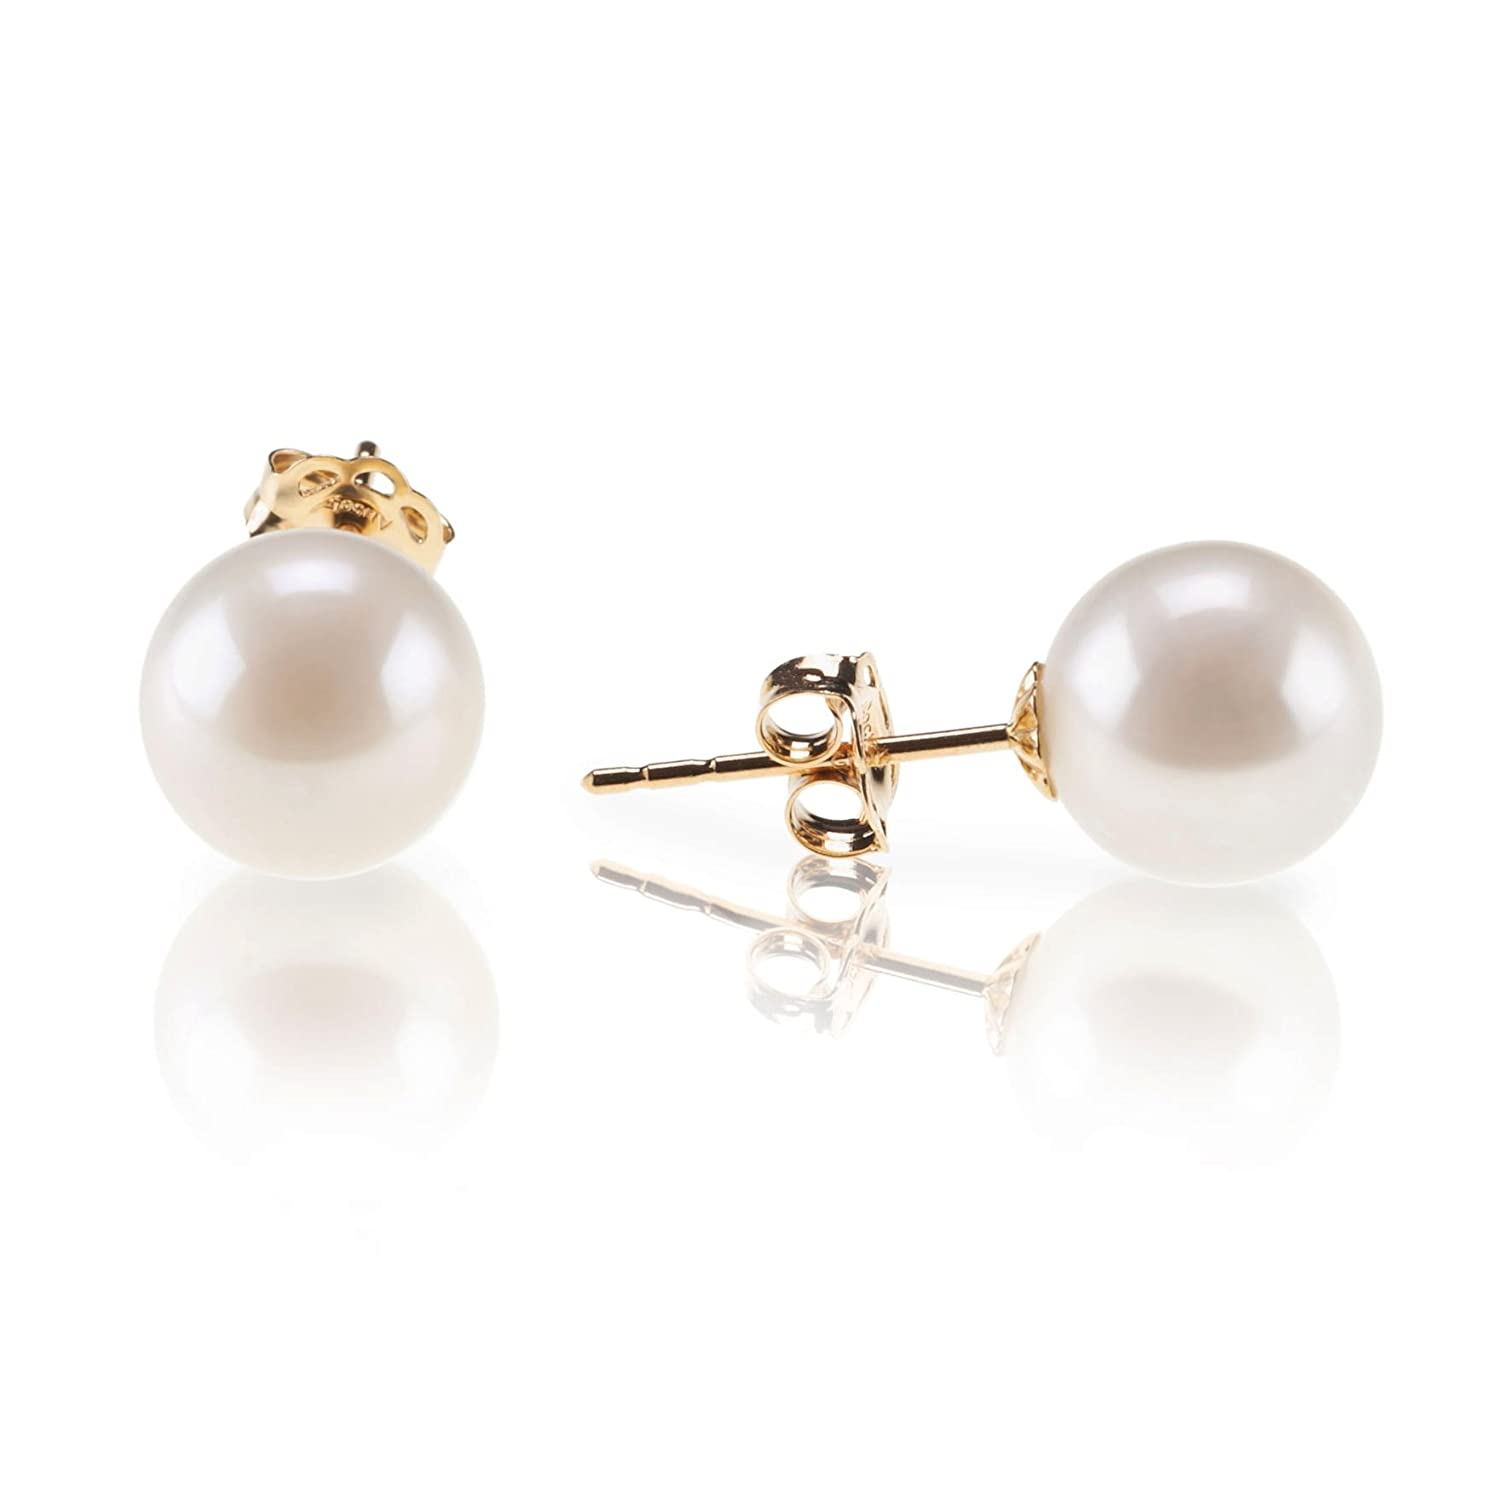 PAVOI Solid 14K Gold Japanese AKOYA Pearl Stud Earrings - Handpicked AAA+ Quality